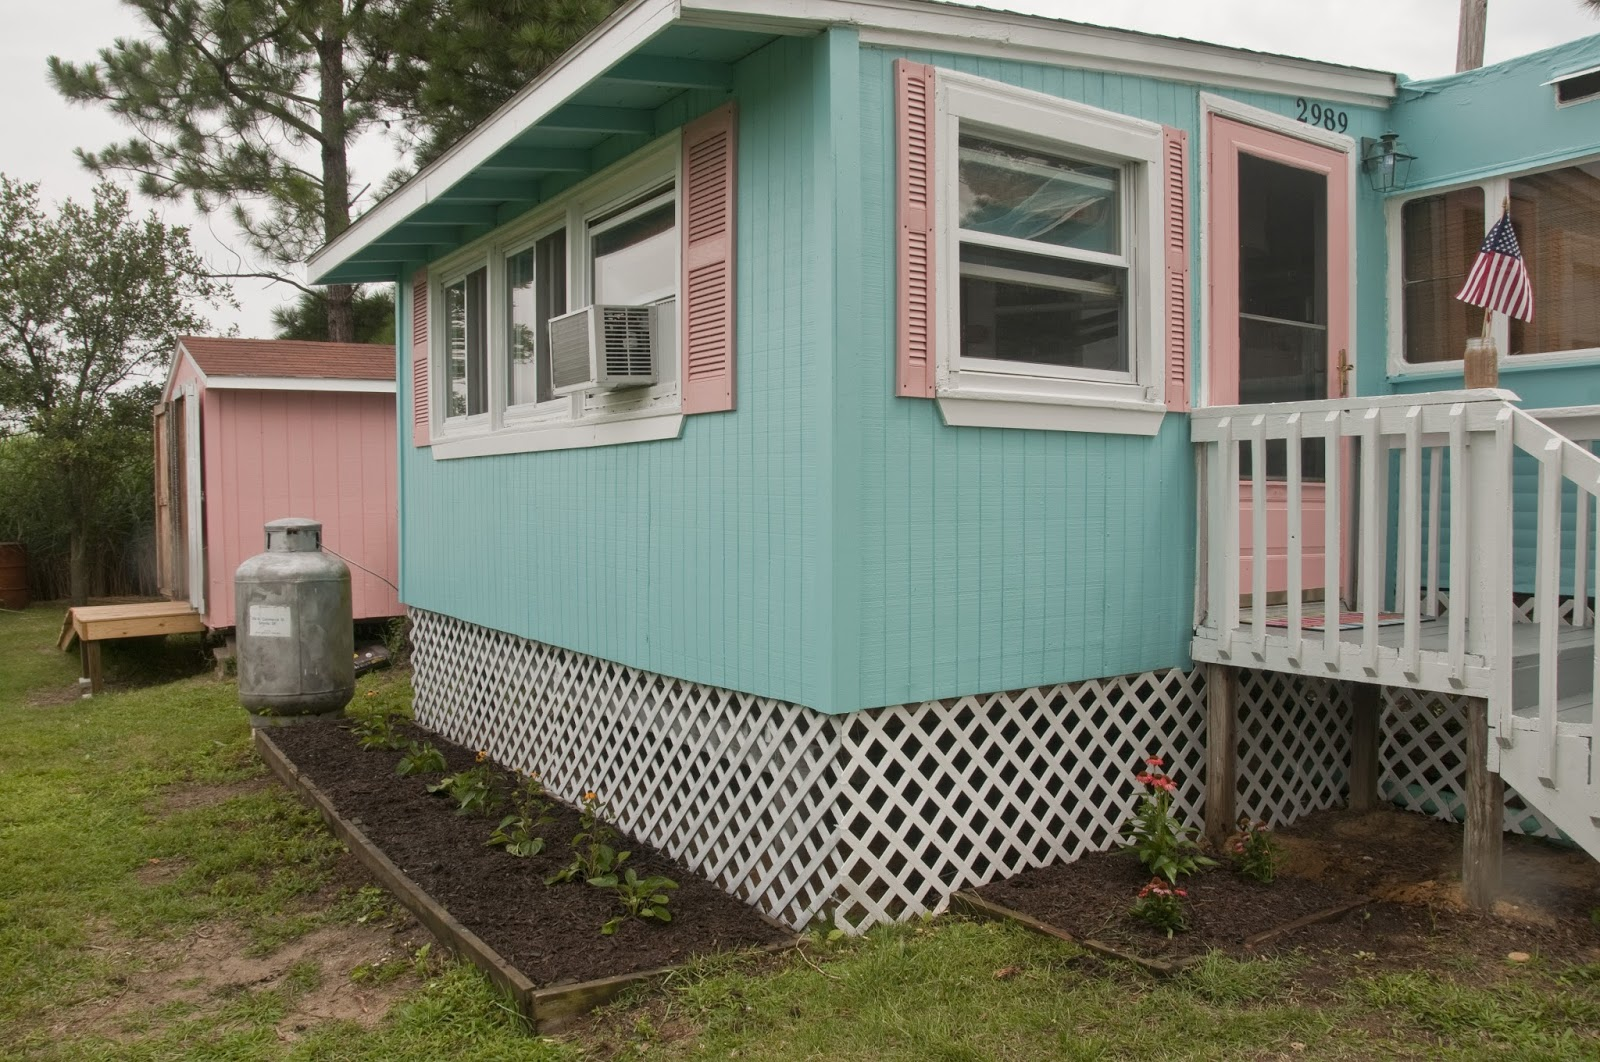 Tales From A Sears House: July 2013